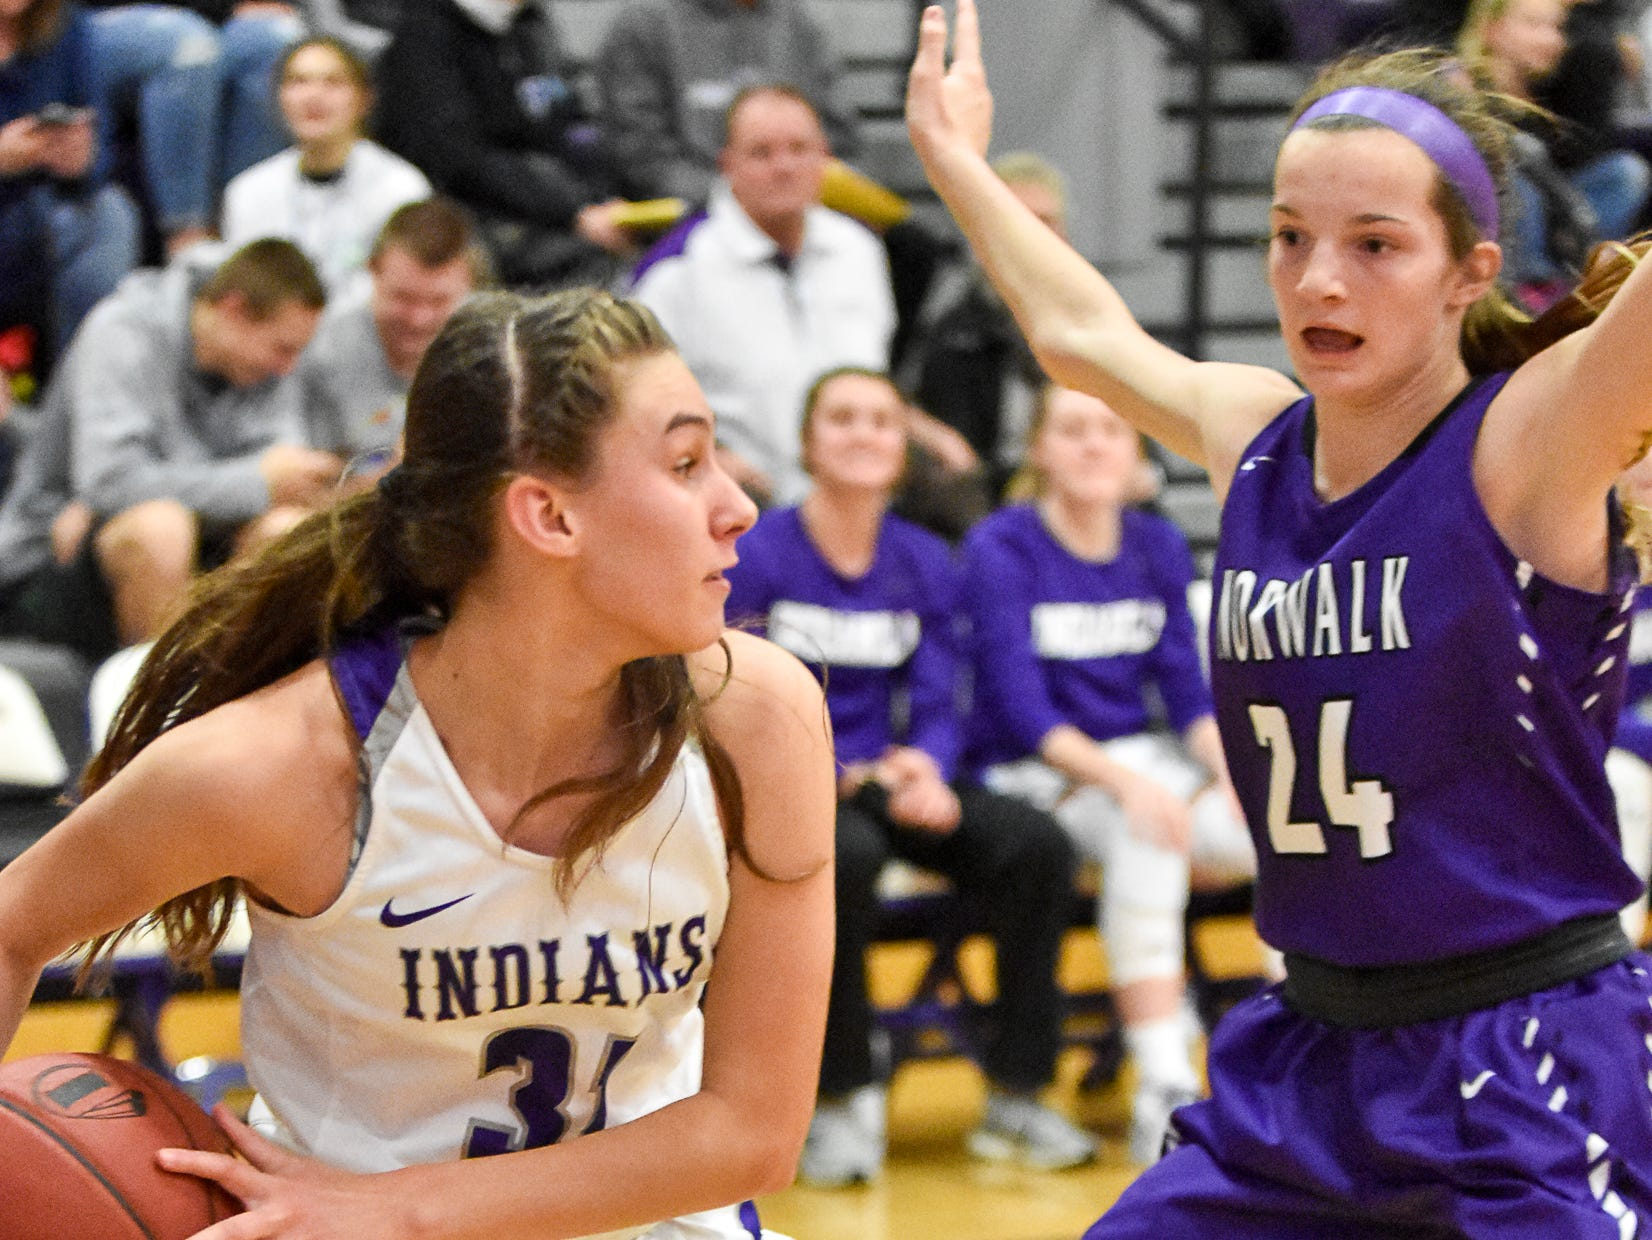 Indianola's Jadyn Forbes looks for an open teammate with Norwalk's Jocelyn Bice guarding. The Indianola girls' basketball team picked up their first win of the season with a 57-34 home victory over Norwalk on Nov. 30, 2018.